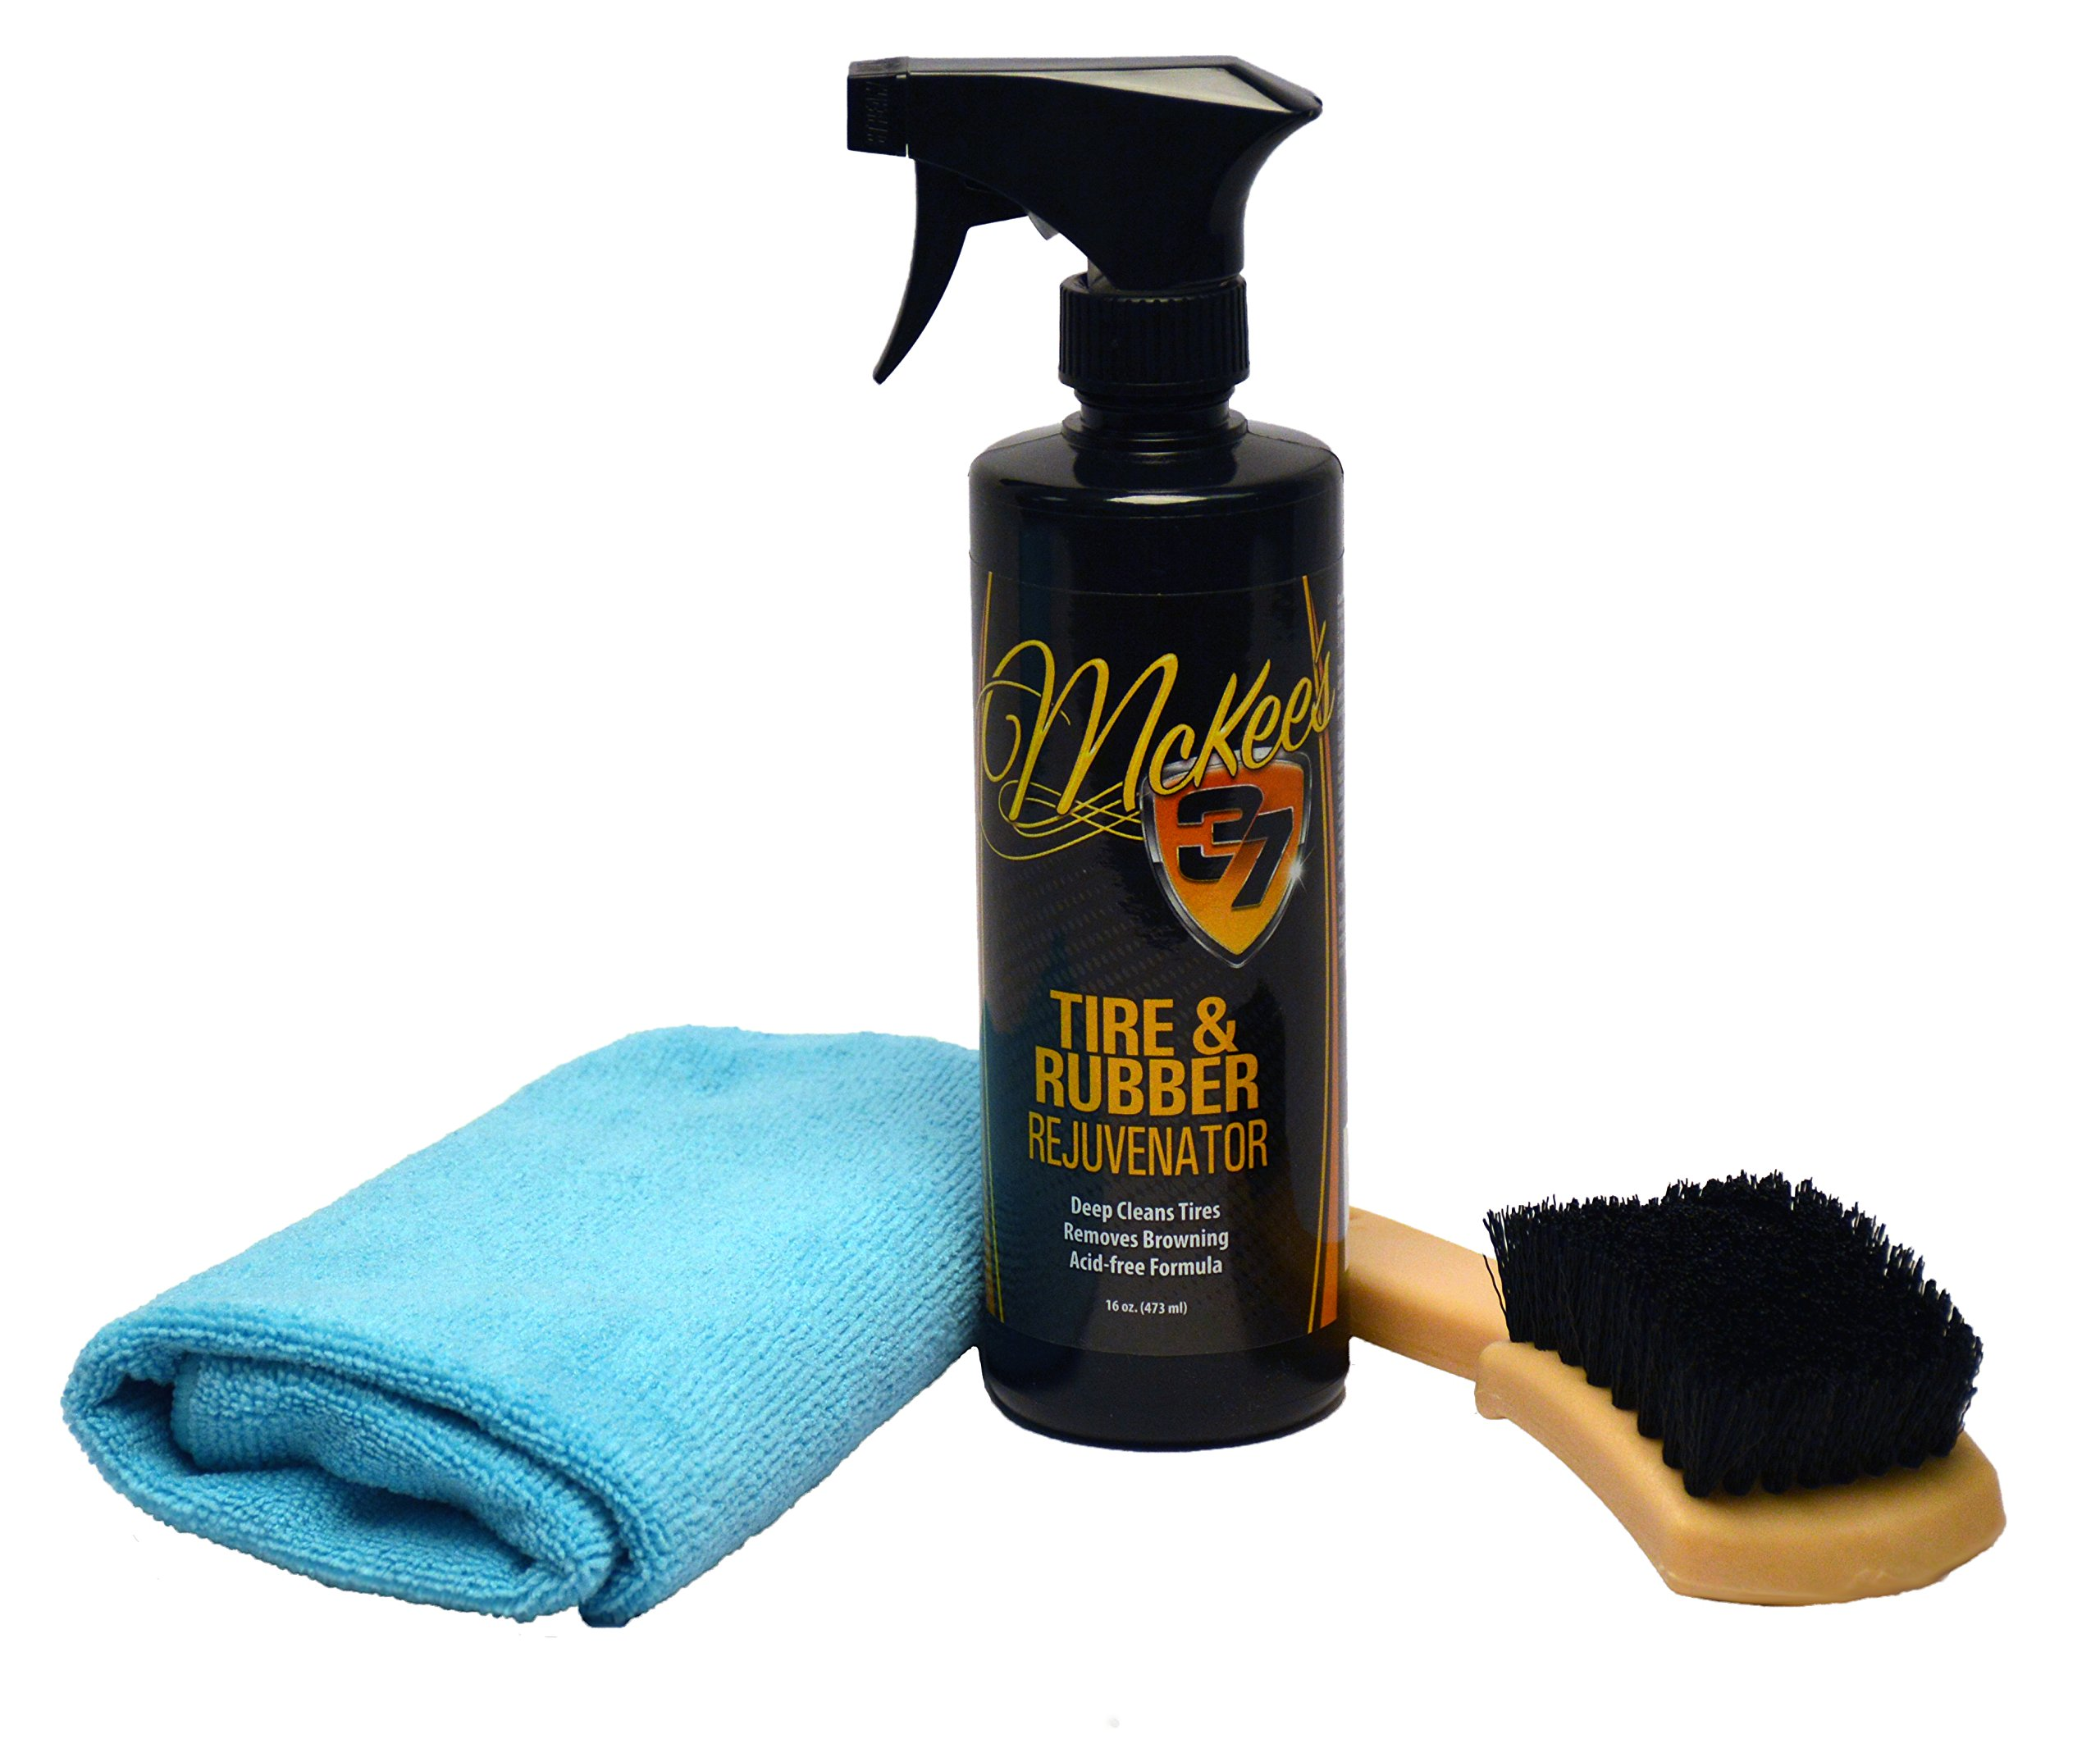 McKee's 37 MK37-1150 MK37-1150 White Wall Tire Cleaning Kit (3-Piece)